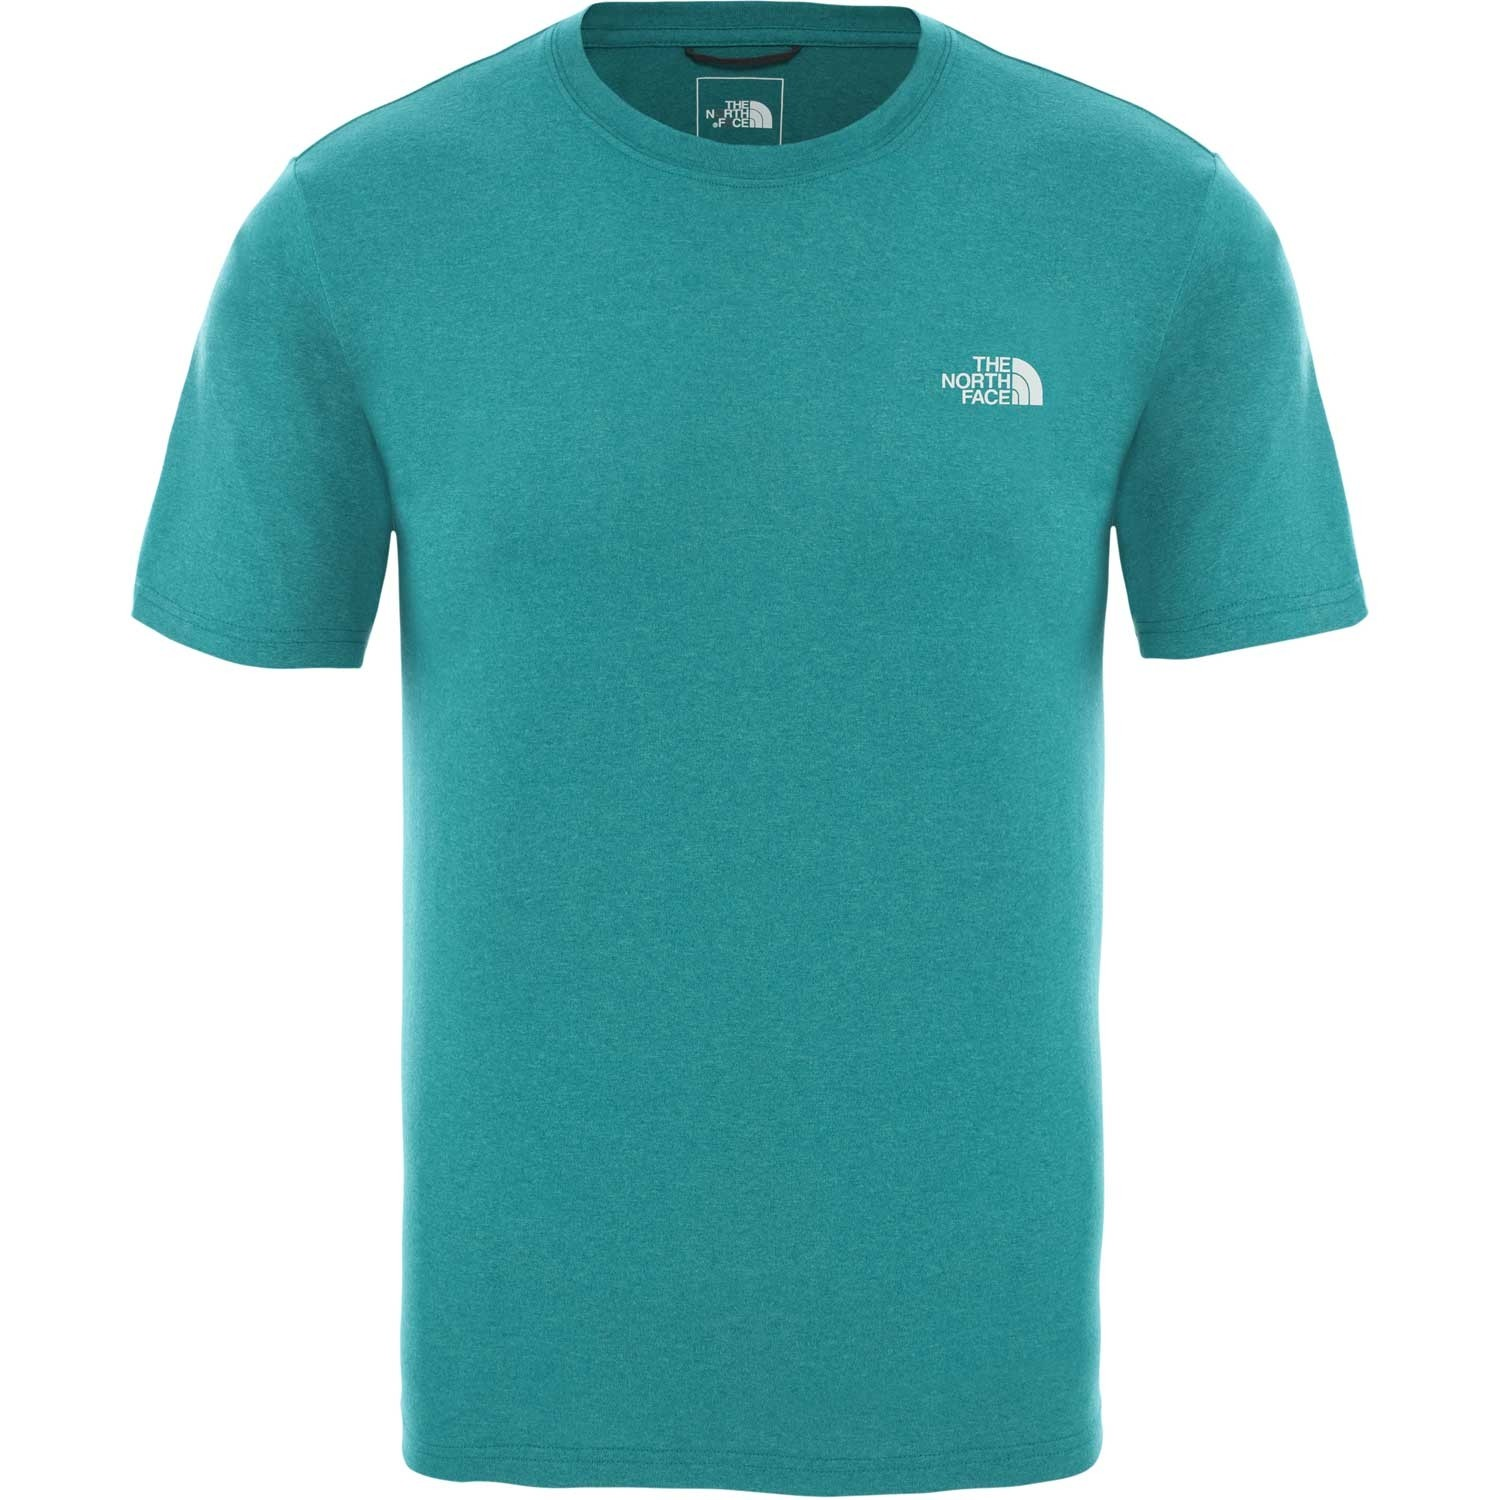 The North Face Reaxion Amp Crew - Men's - Fanfare Green